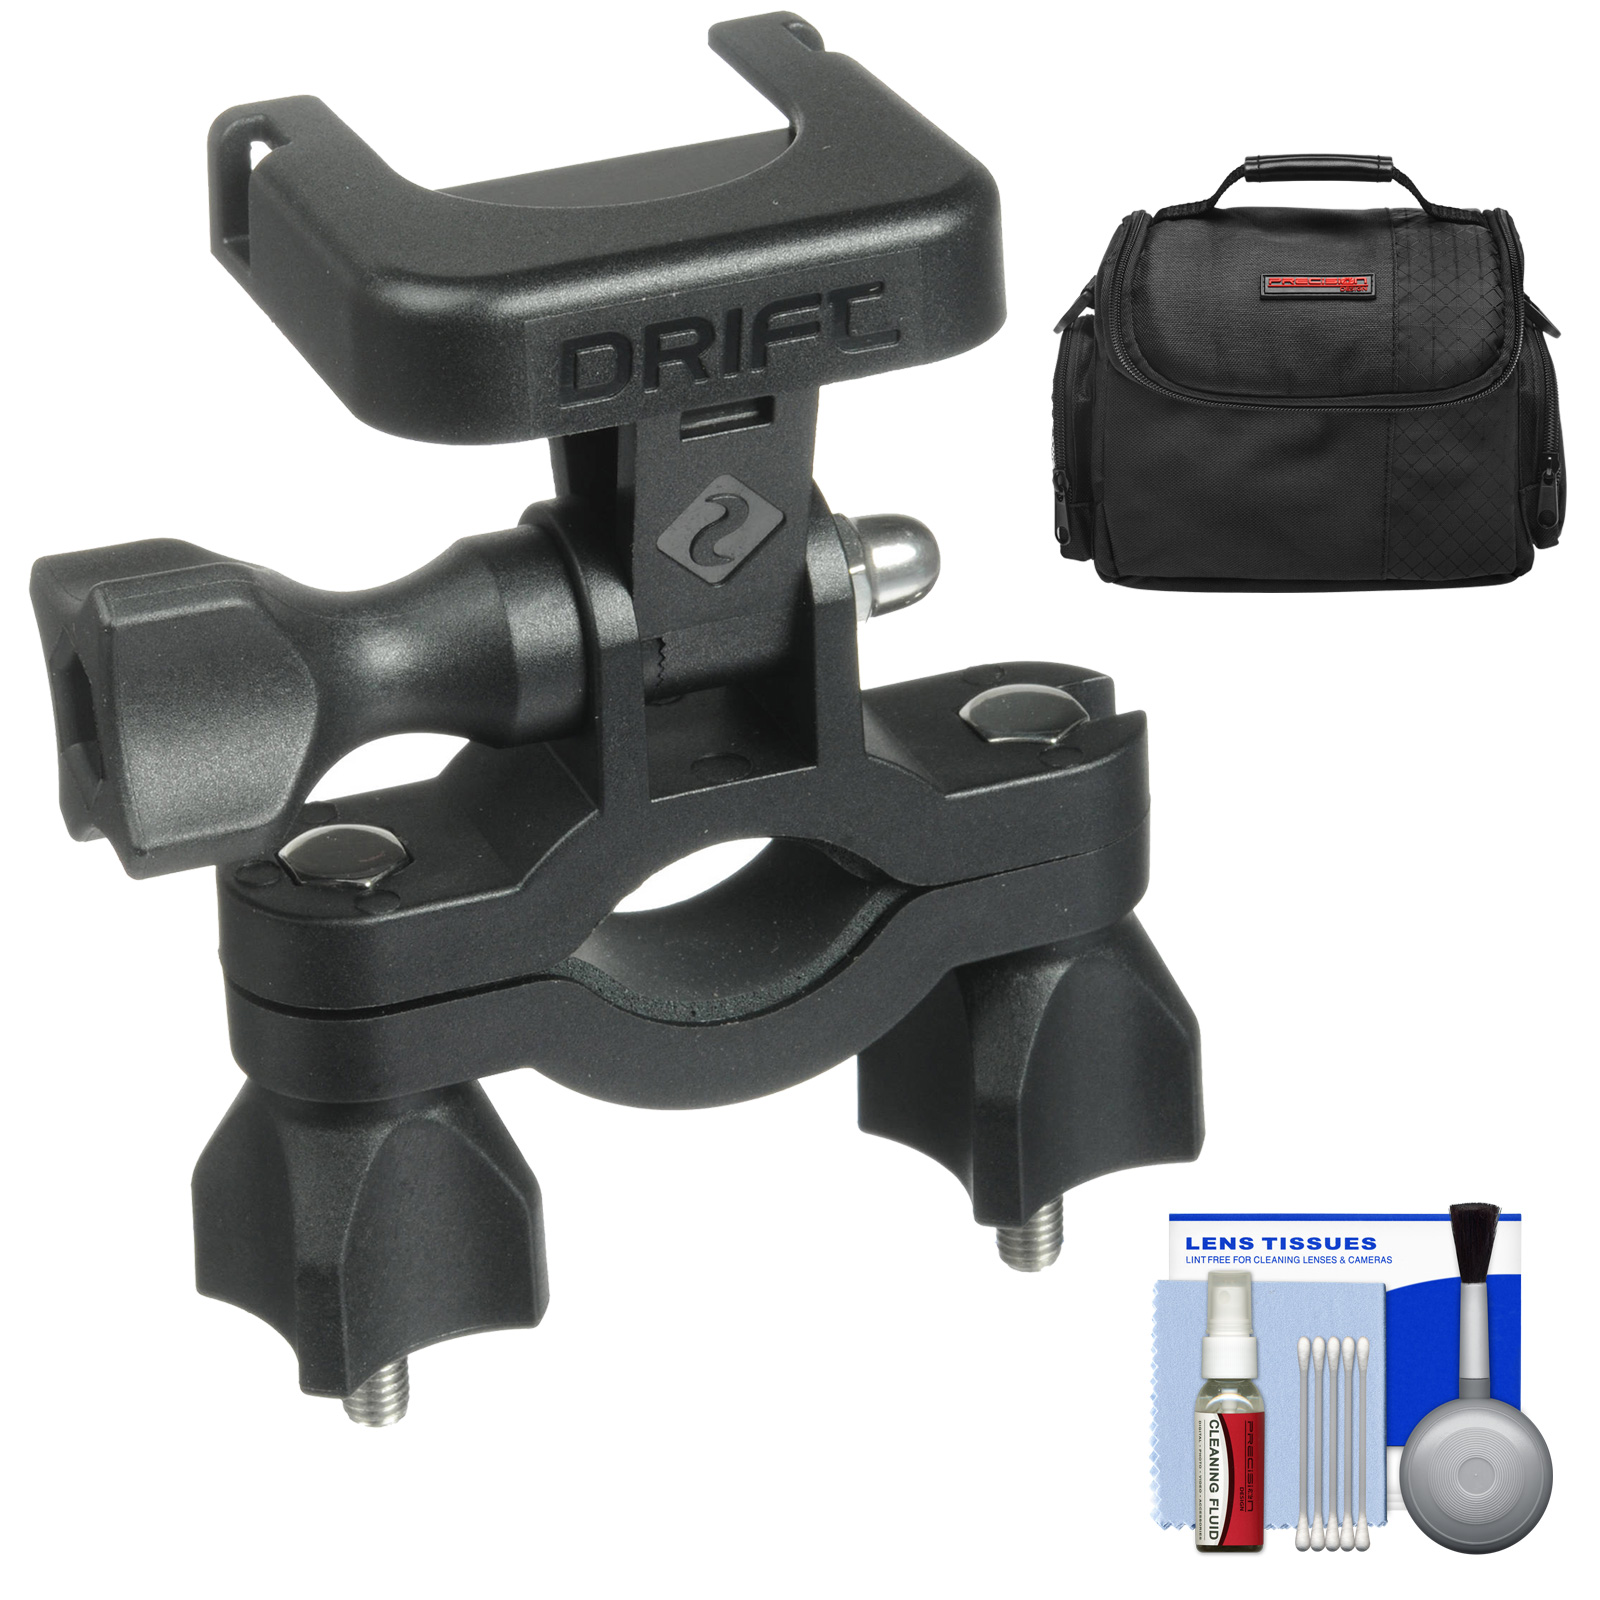 Drift Innovation Handlebar Mount with Case + Cleaning Kit for Drift HD, HD 170, Ghost, Ghost-S Action Camcorders